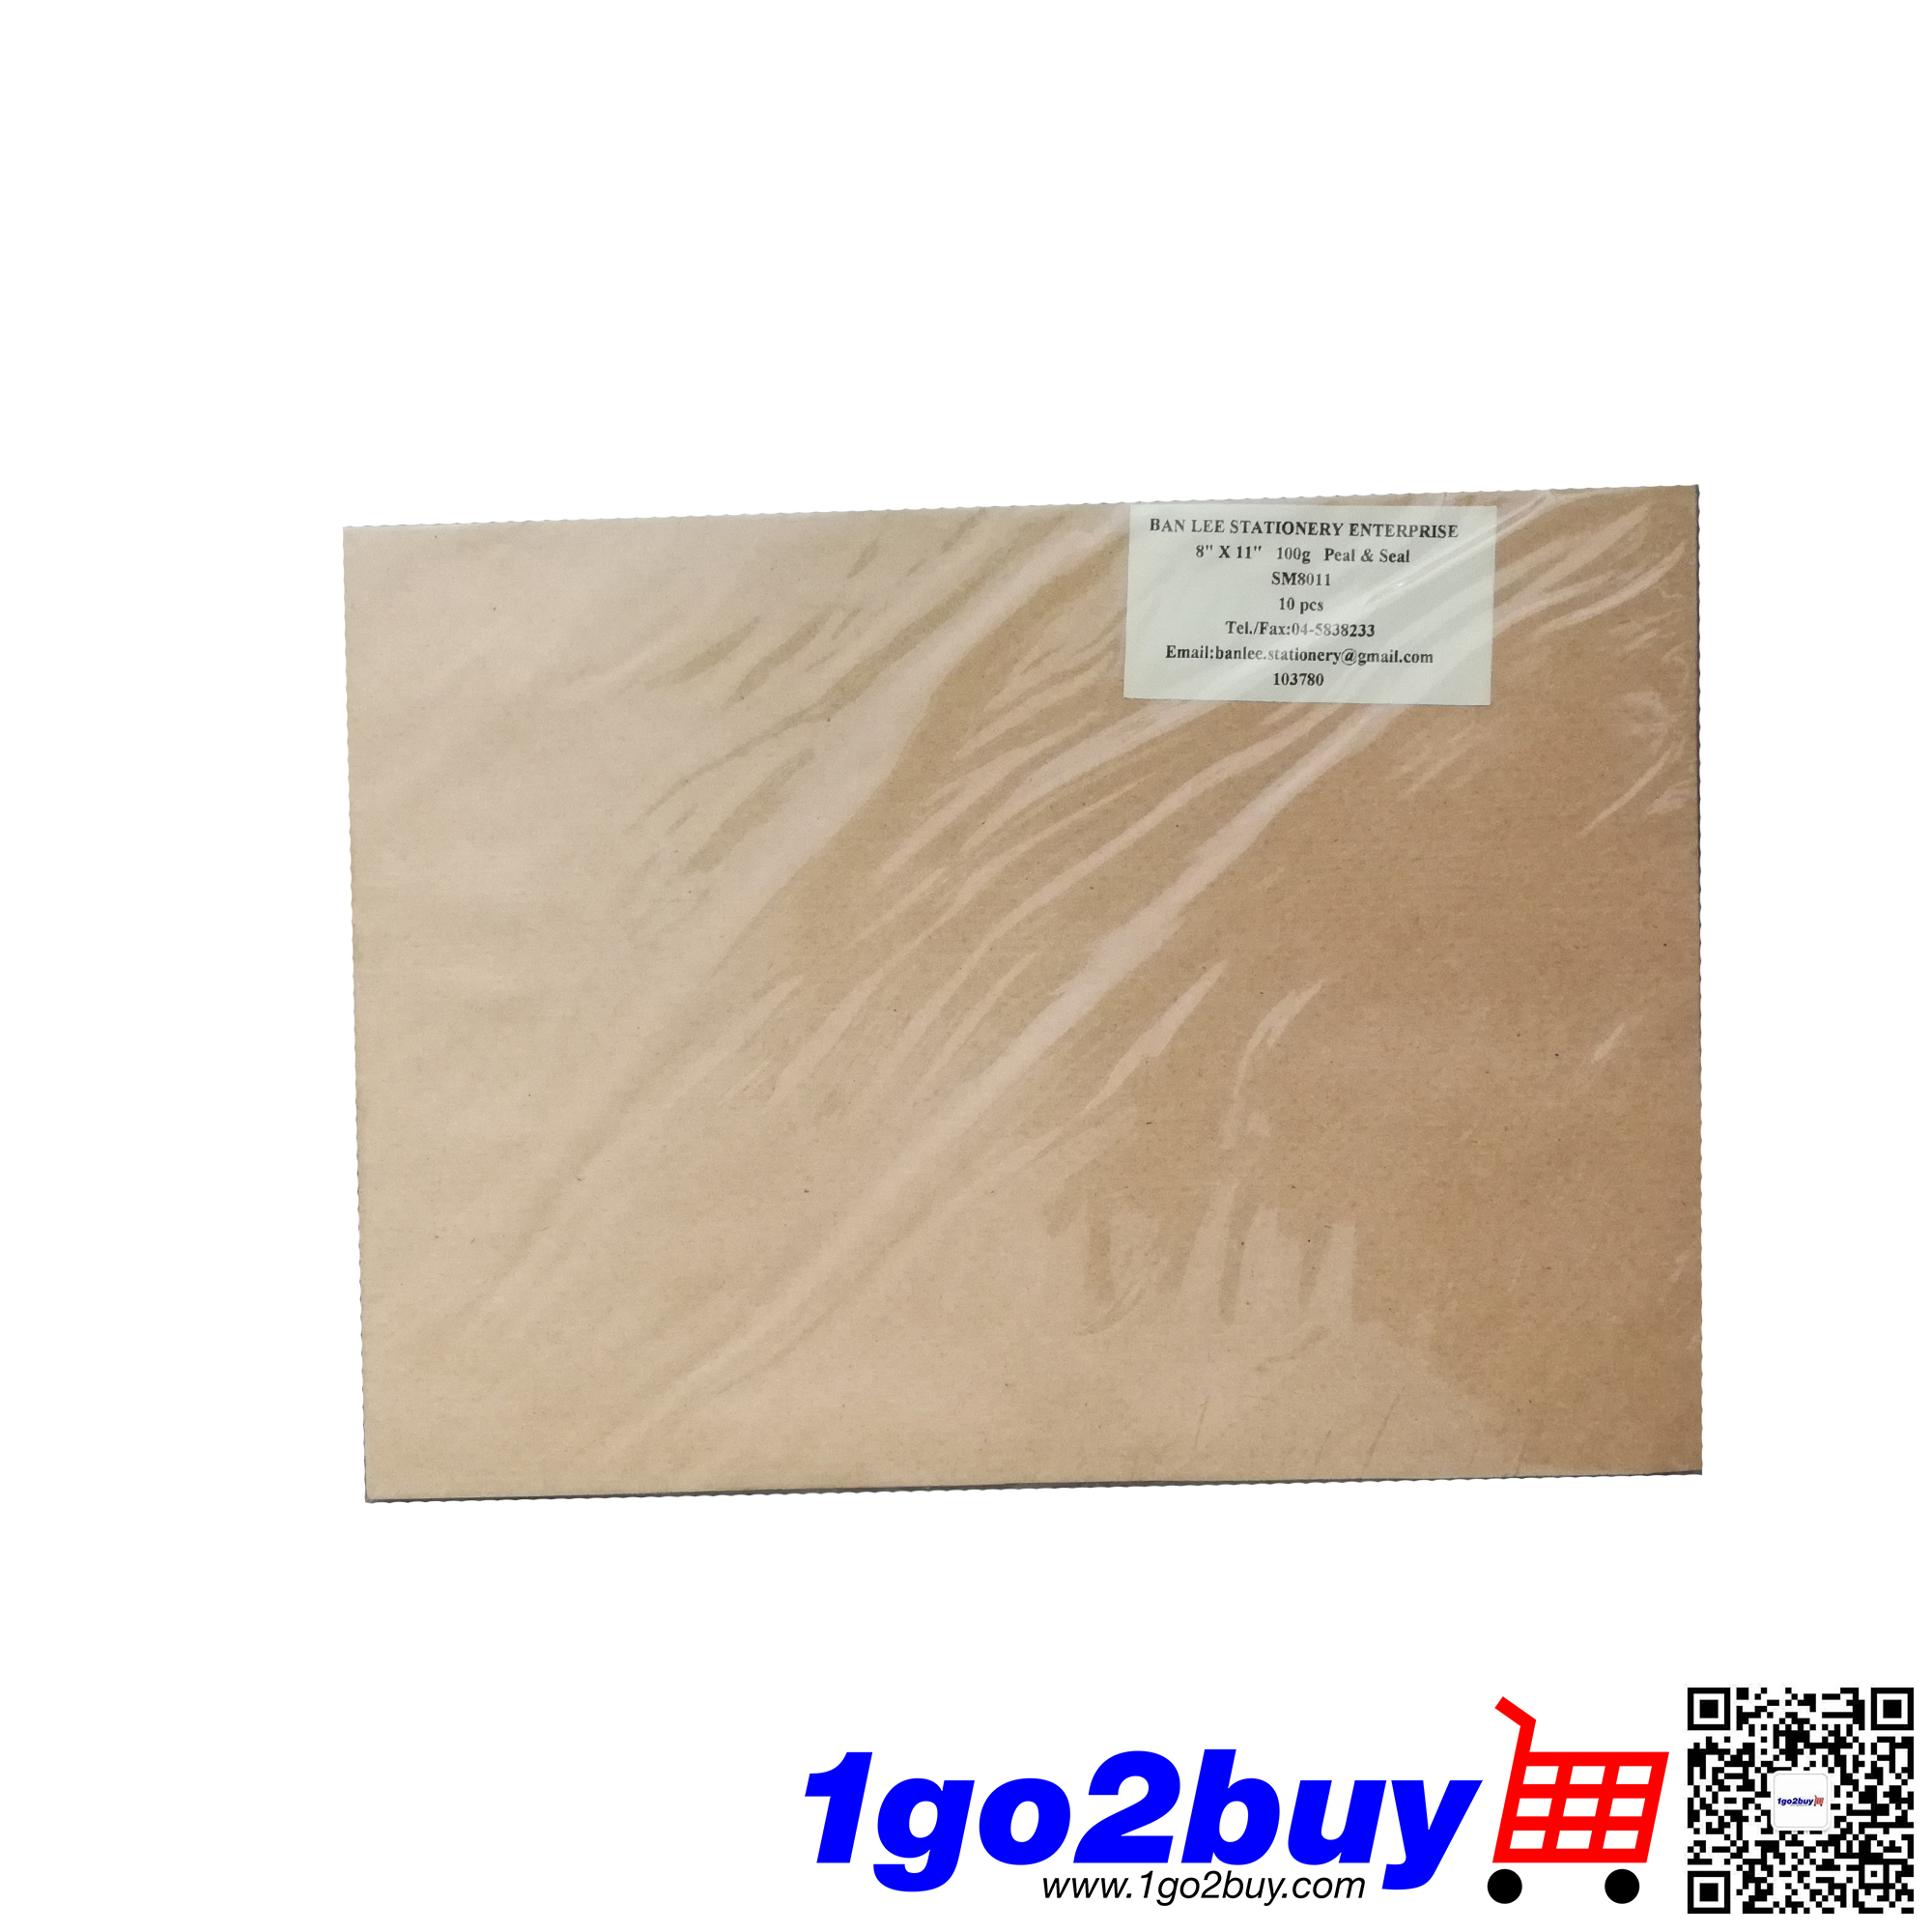 8 11 100g brown envelope peal s end 9 14 2019 3 05 pm